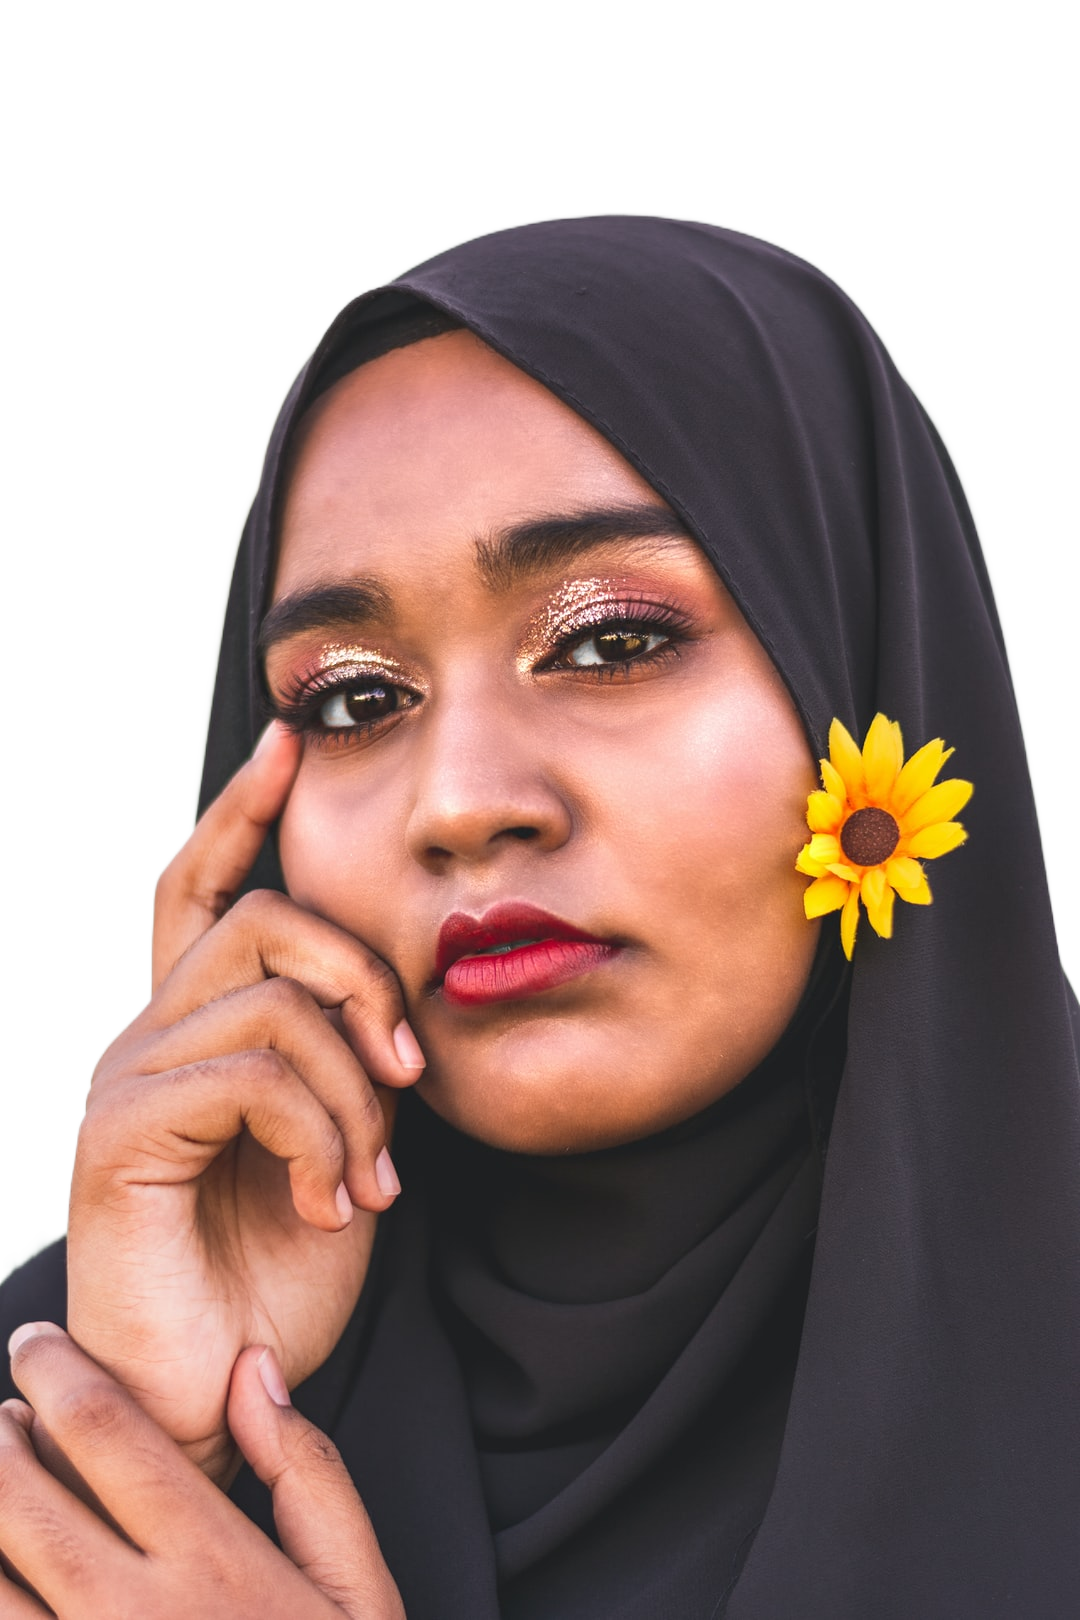 woman in black hijab holding sunflower